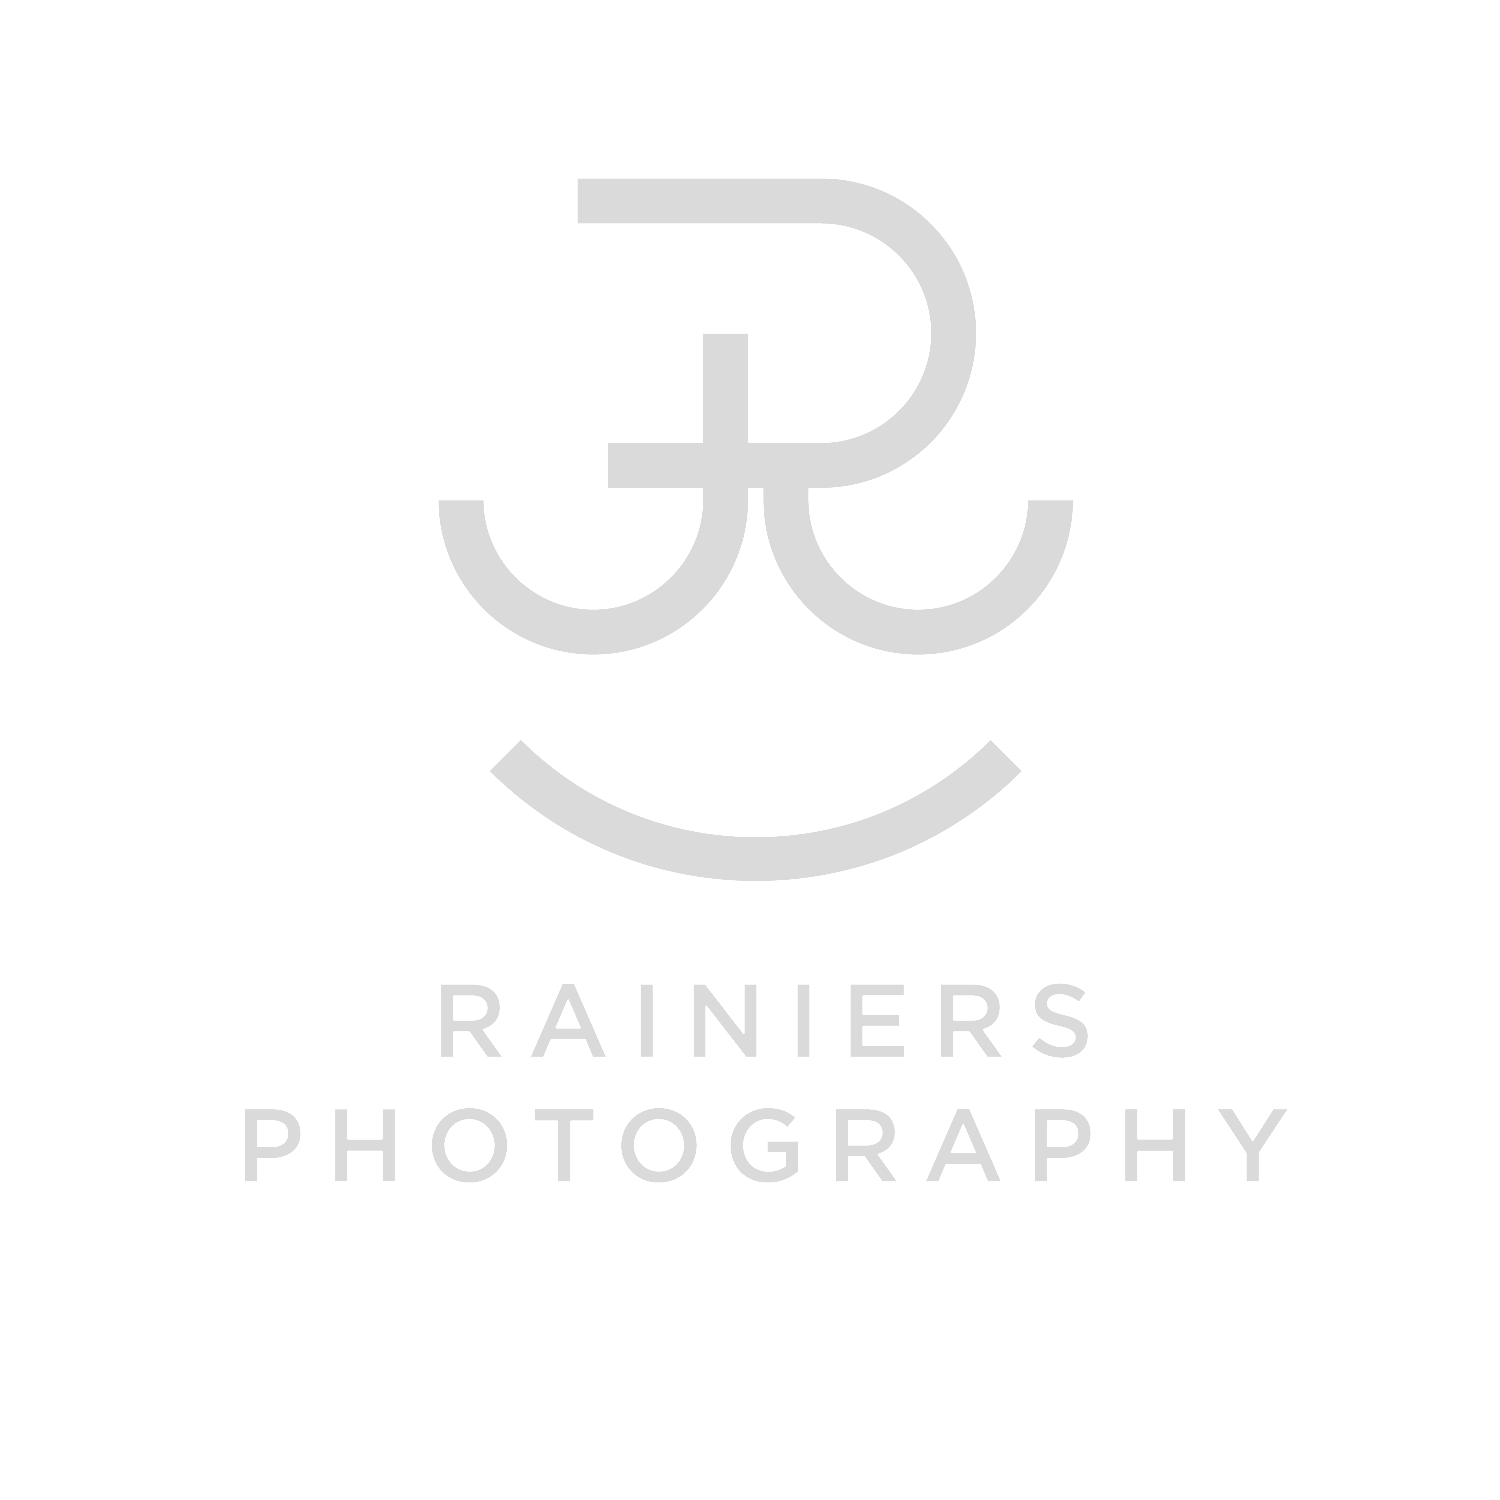 Rainiers Photography - NYC Newborn, Maternity and Family Photography